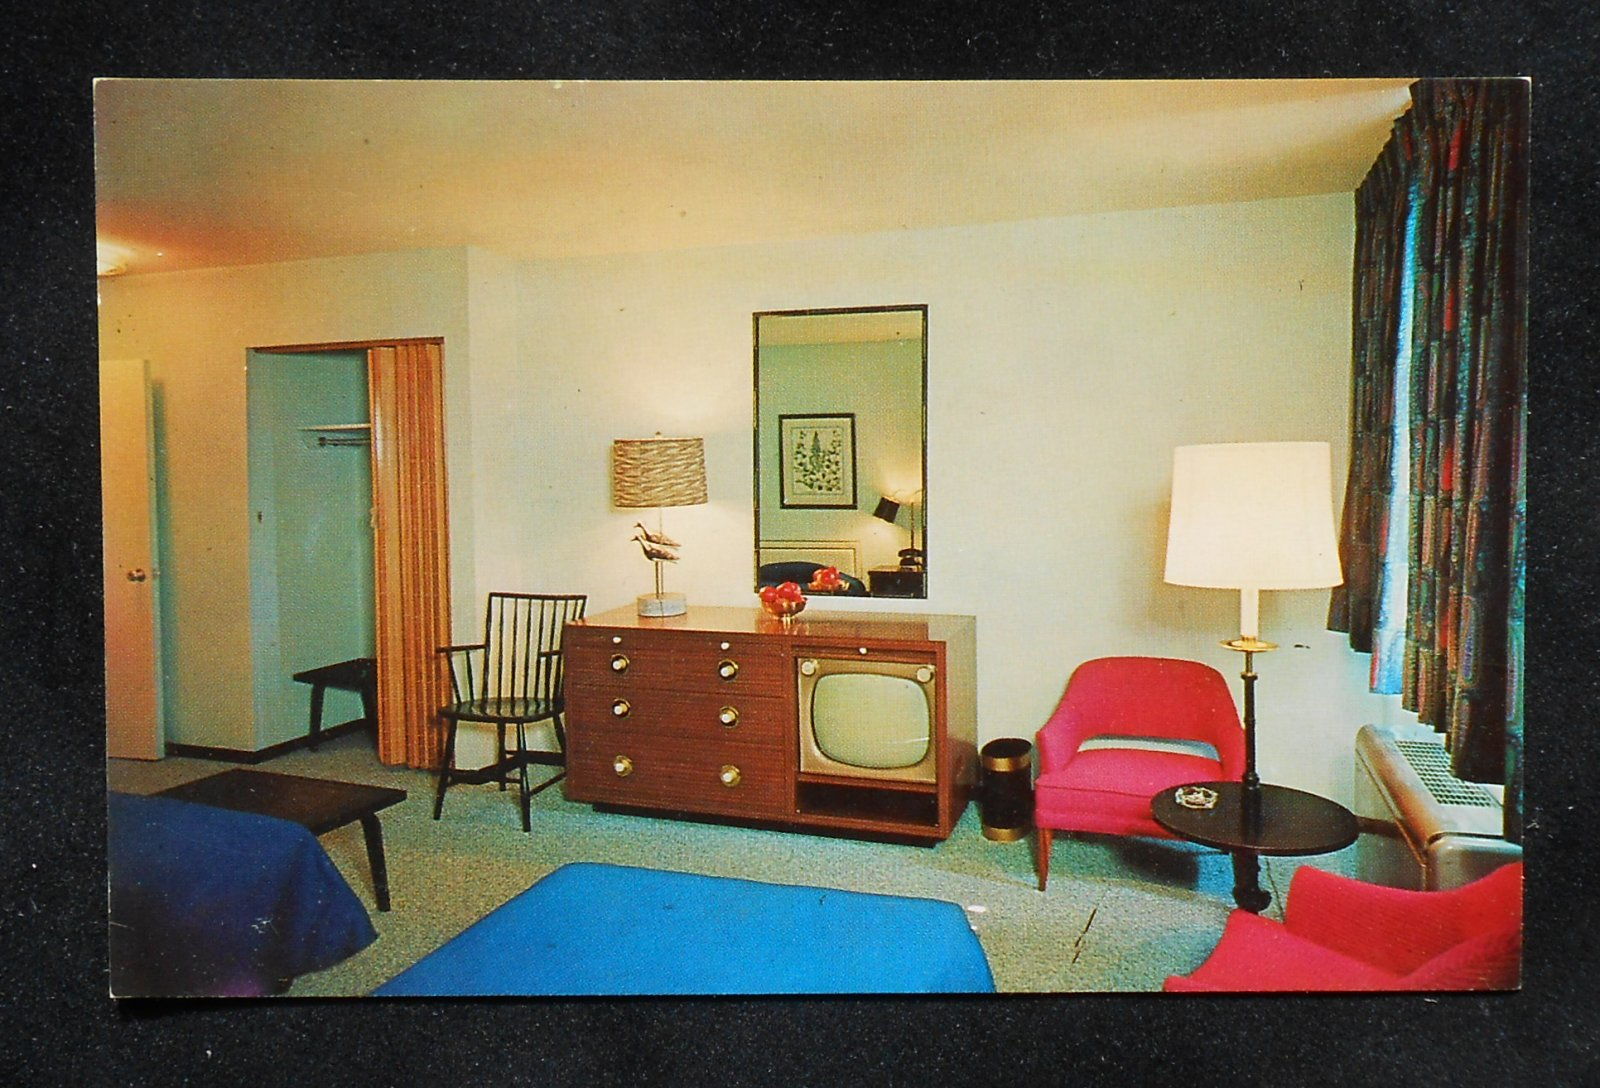 1960s Interior Groton Motor Inn Routes 1 And Interstate 95